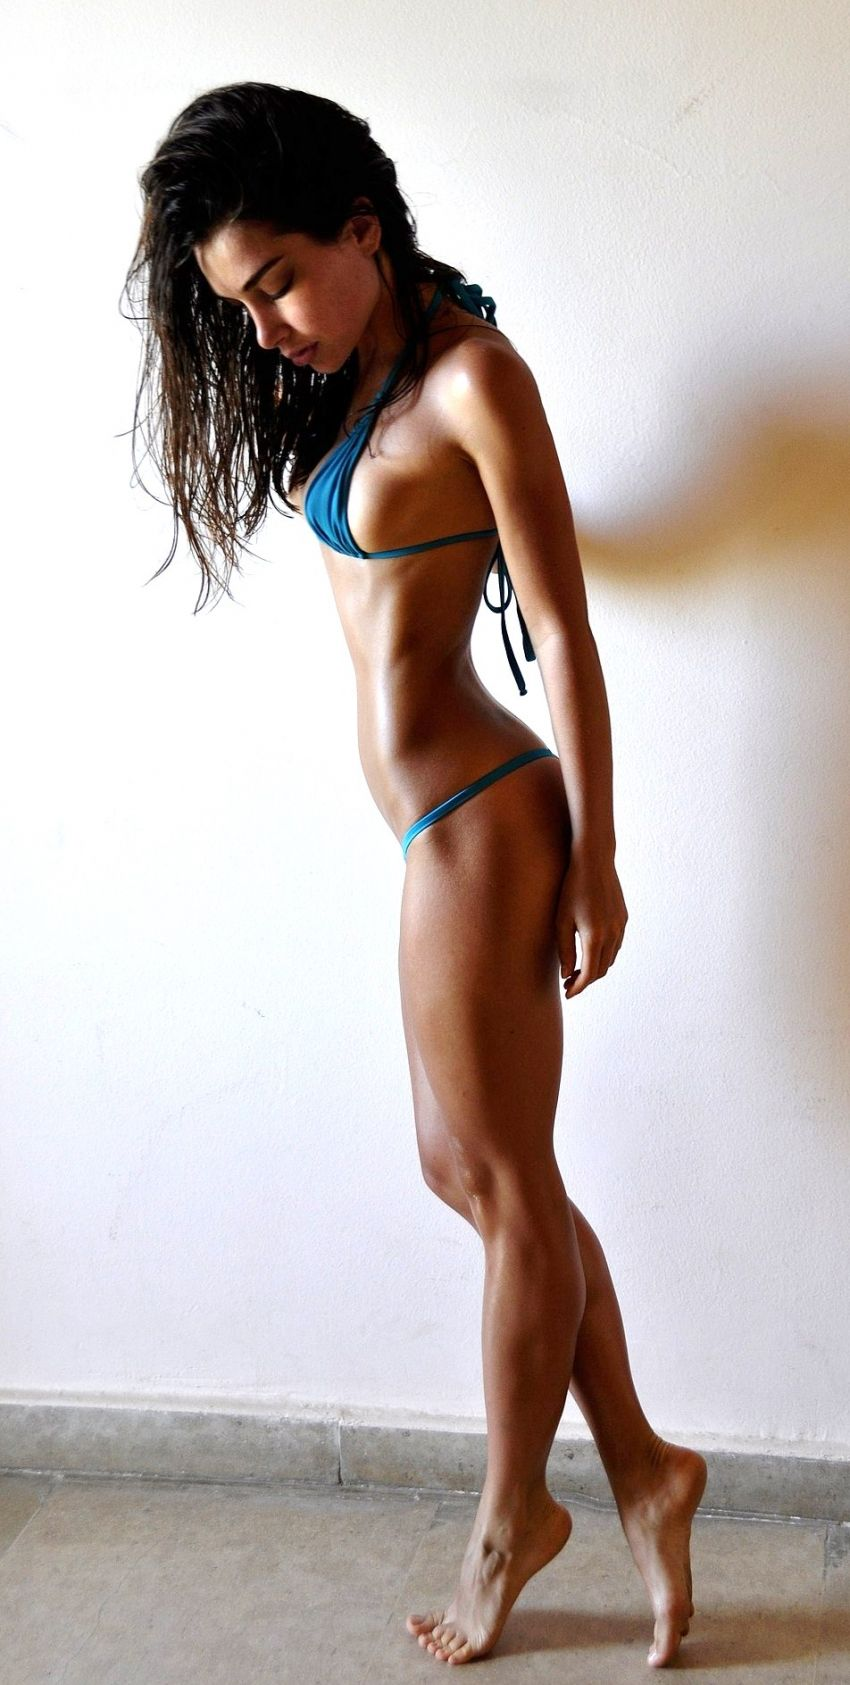 Have perfect body fitness girls selfie rather